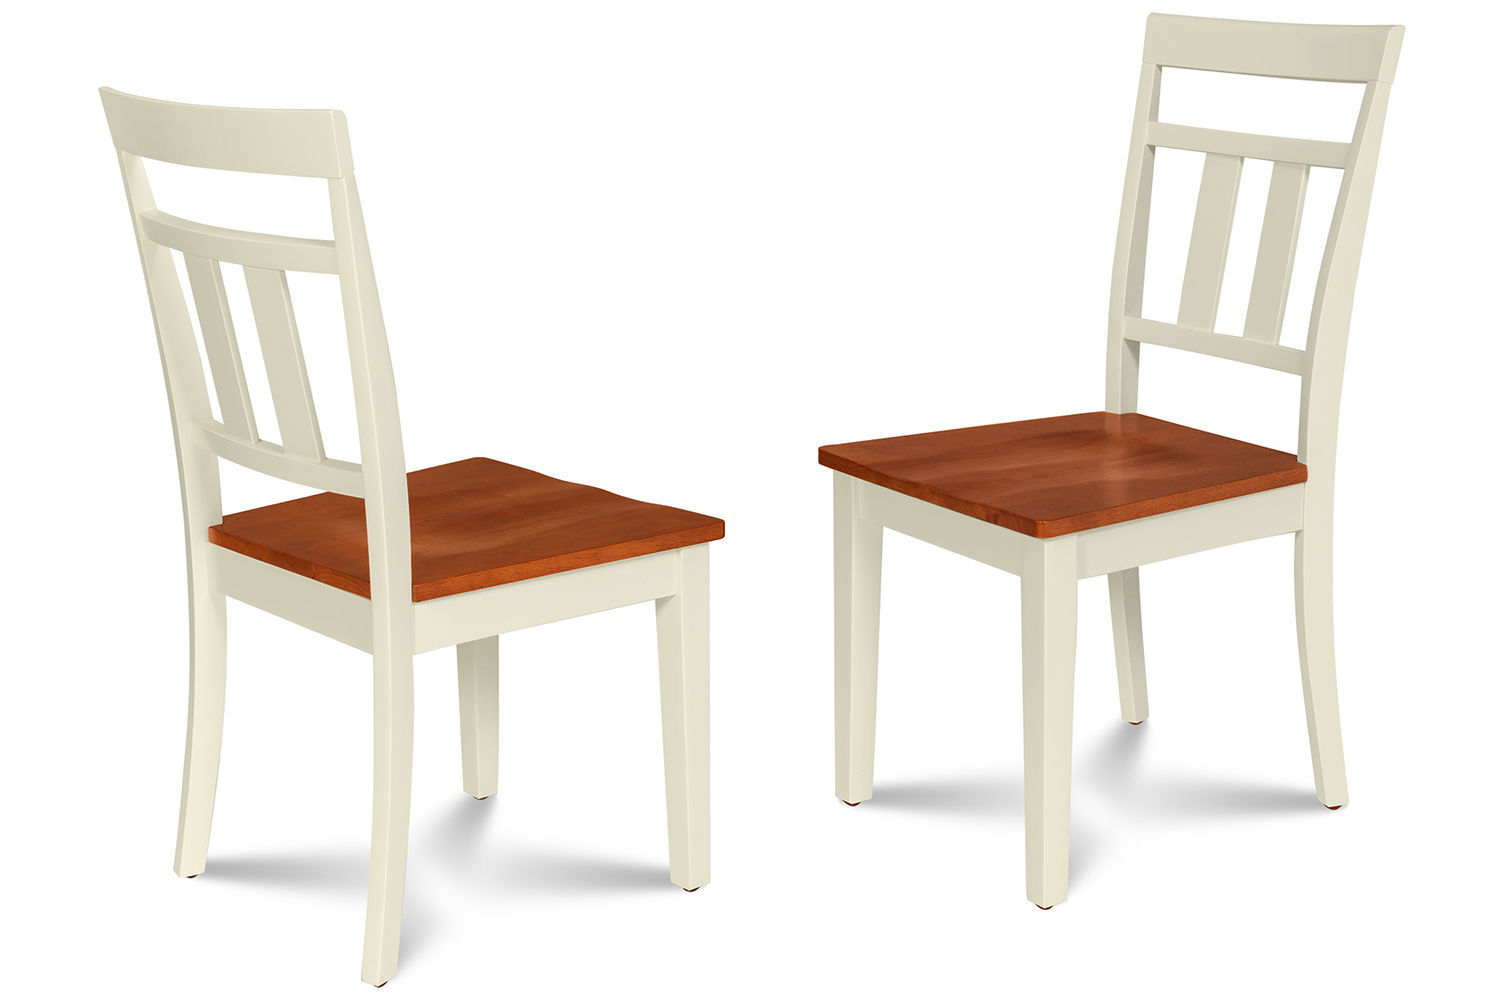 SET OF 2 KITCHEN DINING SIDE CHAIRS w/ WOODEN SEAT IN BUTTERMILK CHERRY